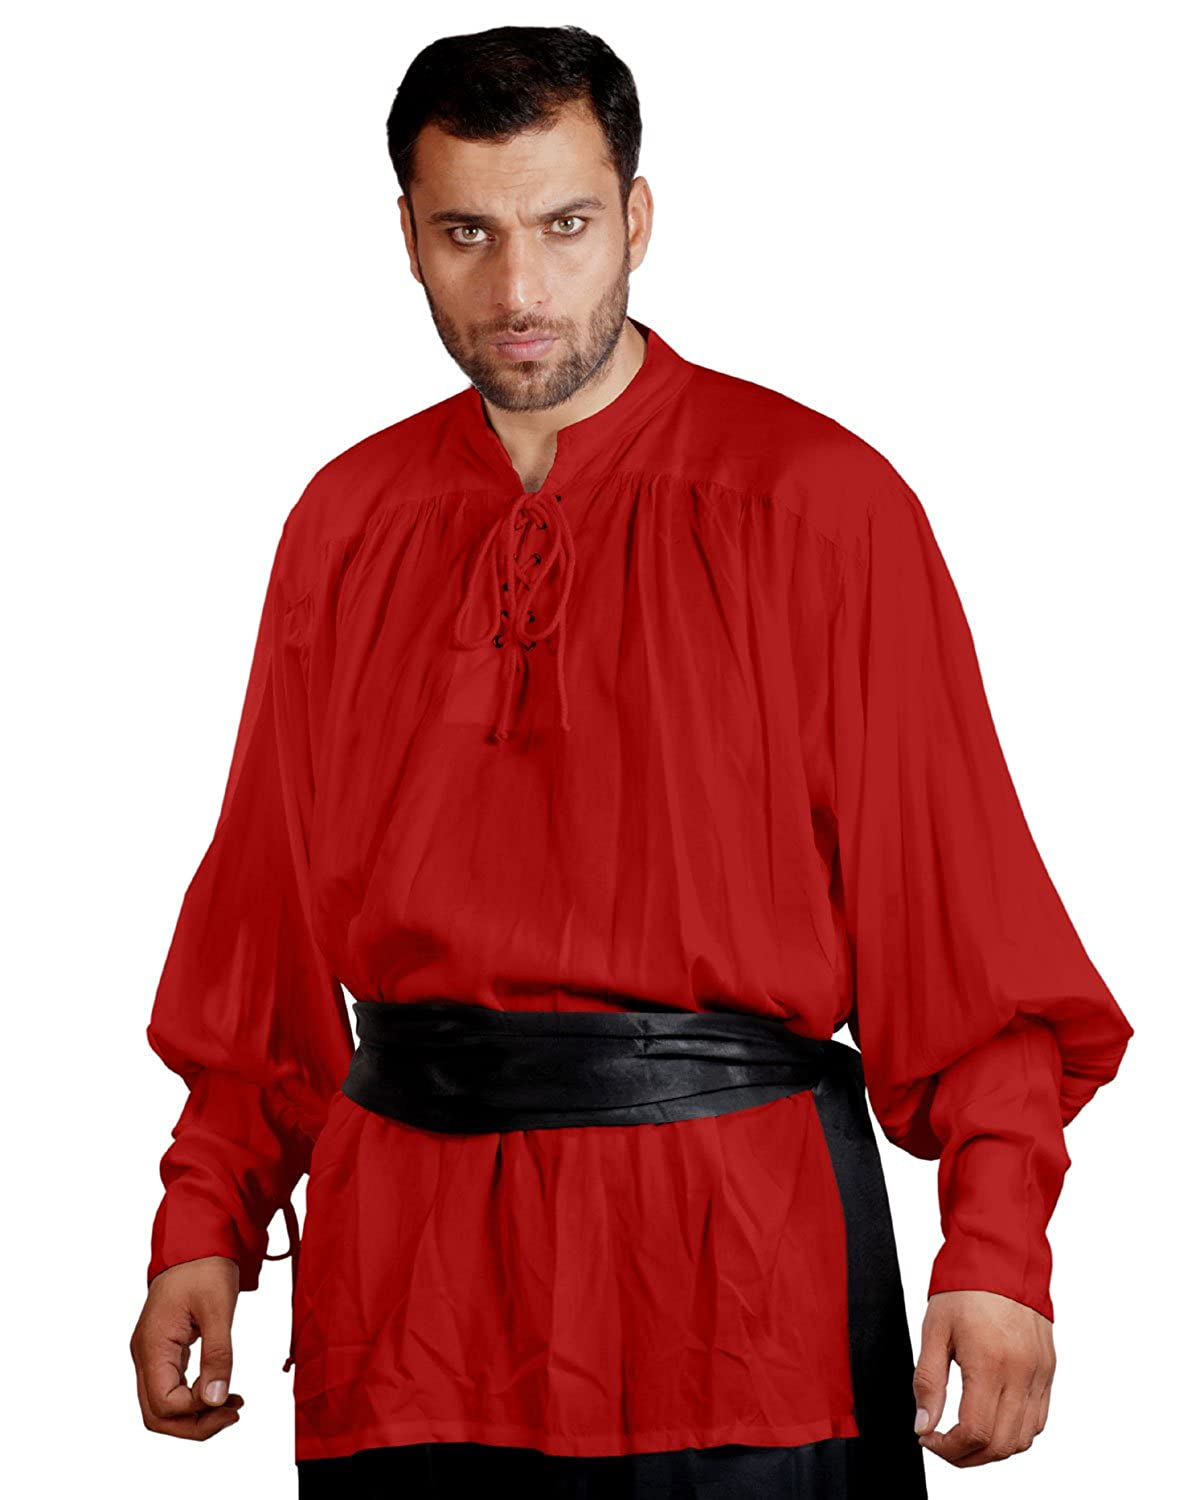 ThePirateDressing Medieval Poet's Pirate John Coxon Cosplay Costume Shirt C1004 C1004-Parent